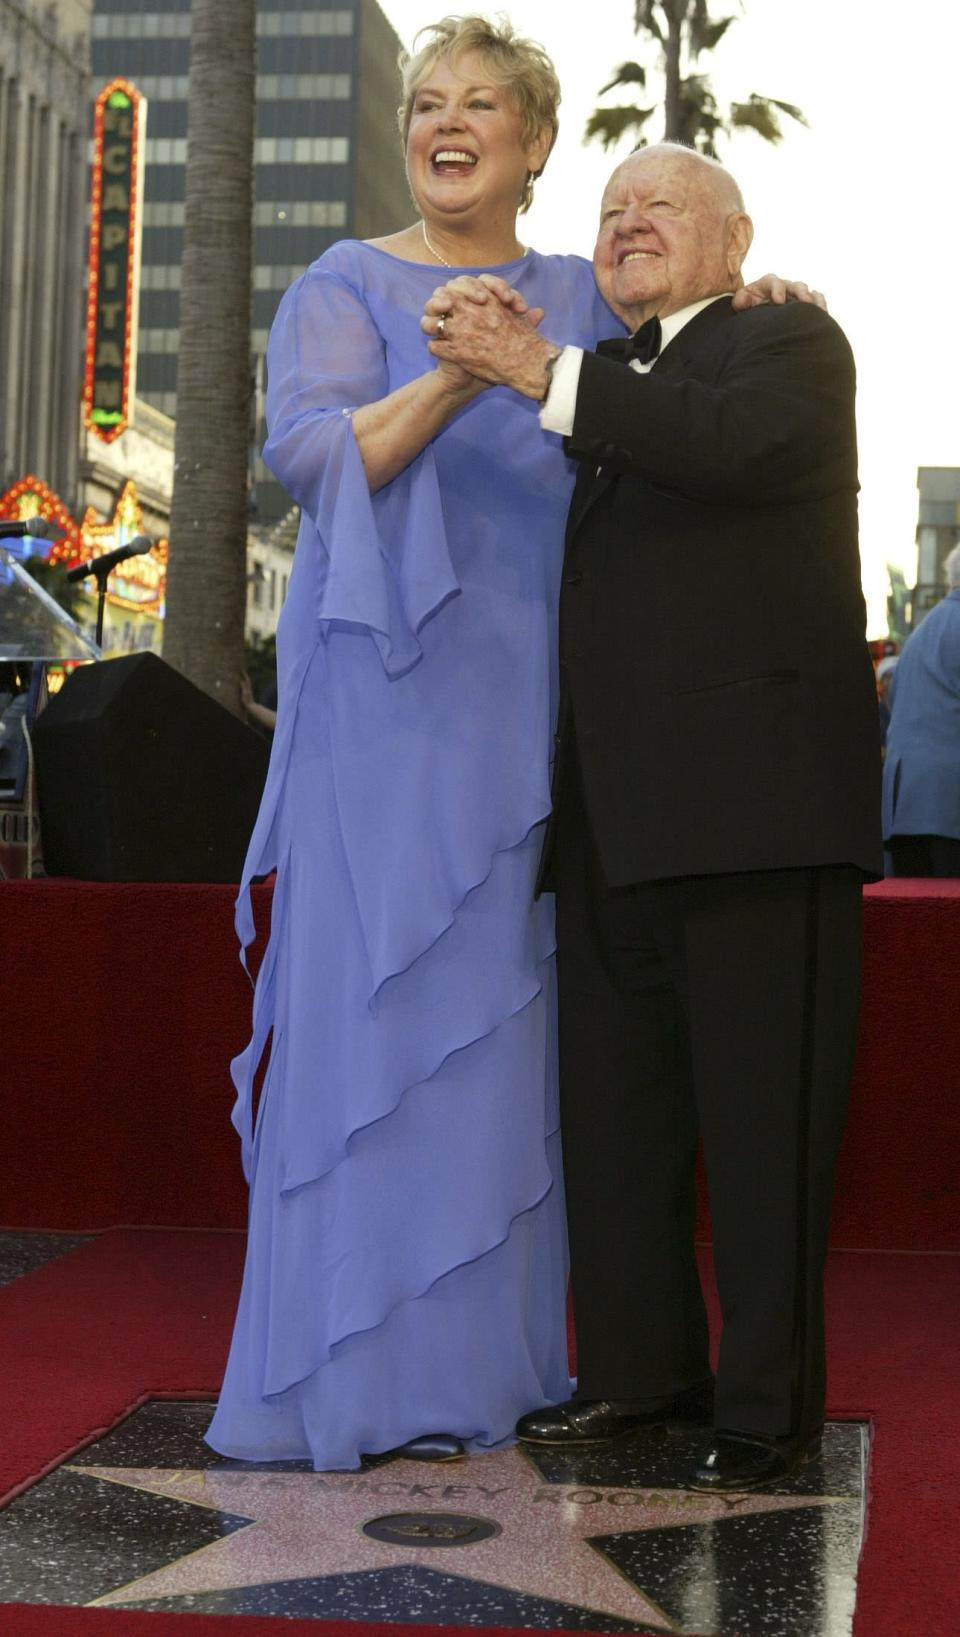 Actor Mickey Rooney and his wife Jan dance on their star after it was unveiled on the Hollywood Walk of Fame in Hollywood in this April 26, 2004 file photo. Rooney, the pint-sized screen dynamo of the 1930s and 1940s best known for his boy-next-door role in the Andy Hardy movies, died on April 6, 2014 at 93, the TMZ celebrity website reported. It did not give a cause of death and a spokesman was not immediately available for comment. REUTERS/Lucy Nicholson/Files (UNITED STATES - Tags: ENTERTAINMENT OBITUARY)